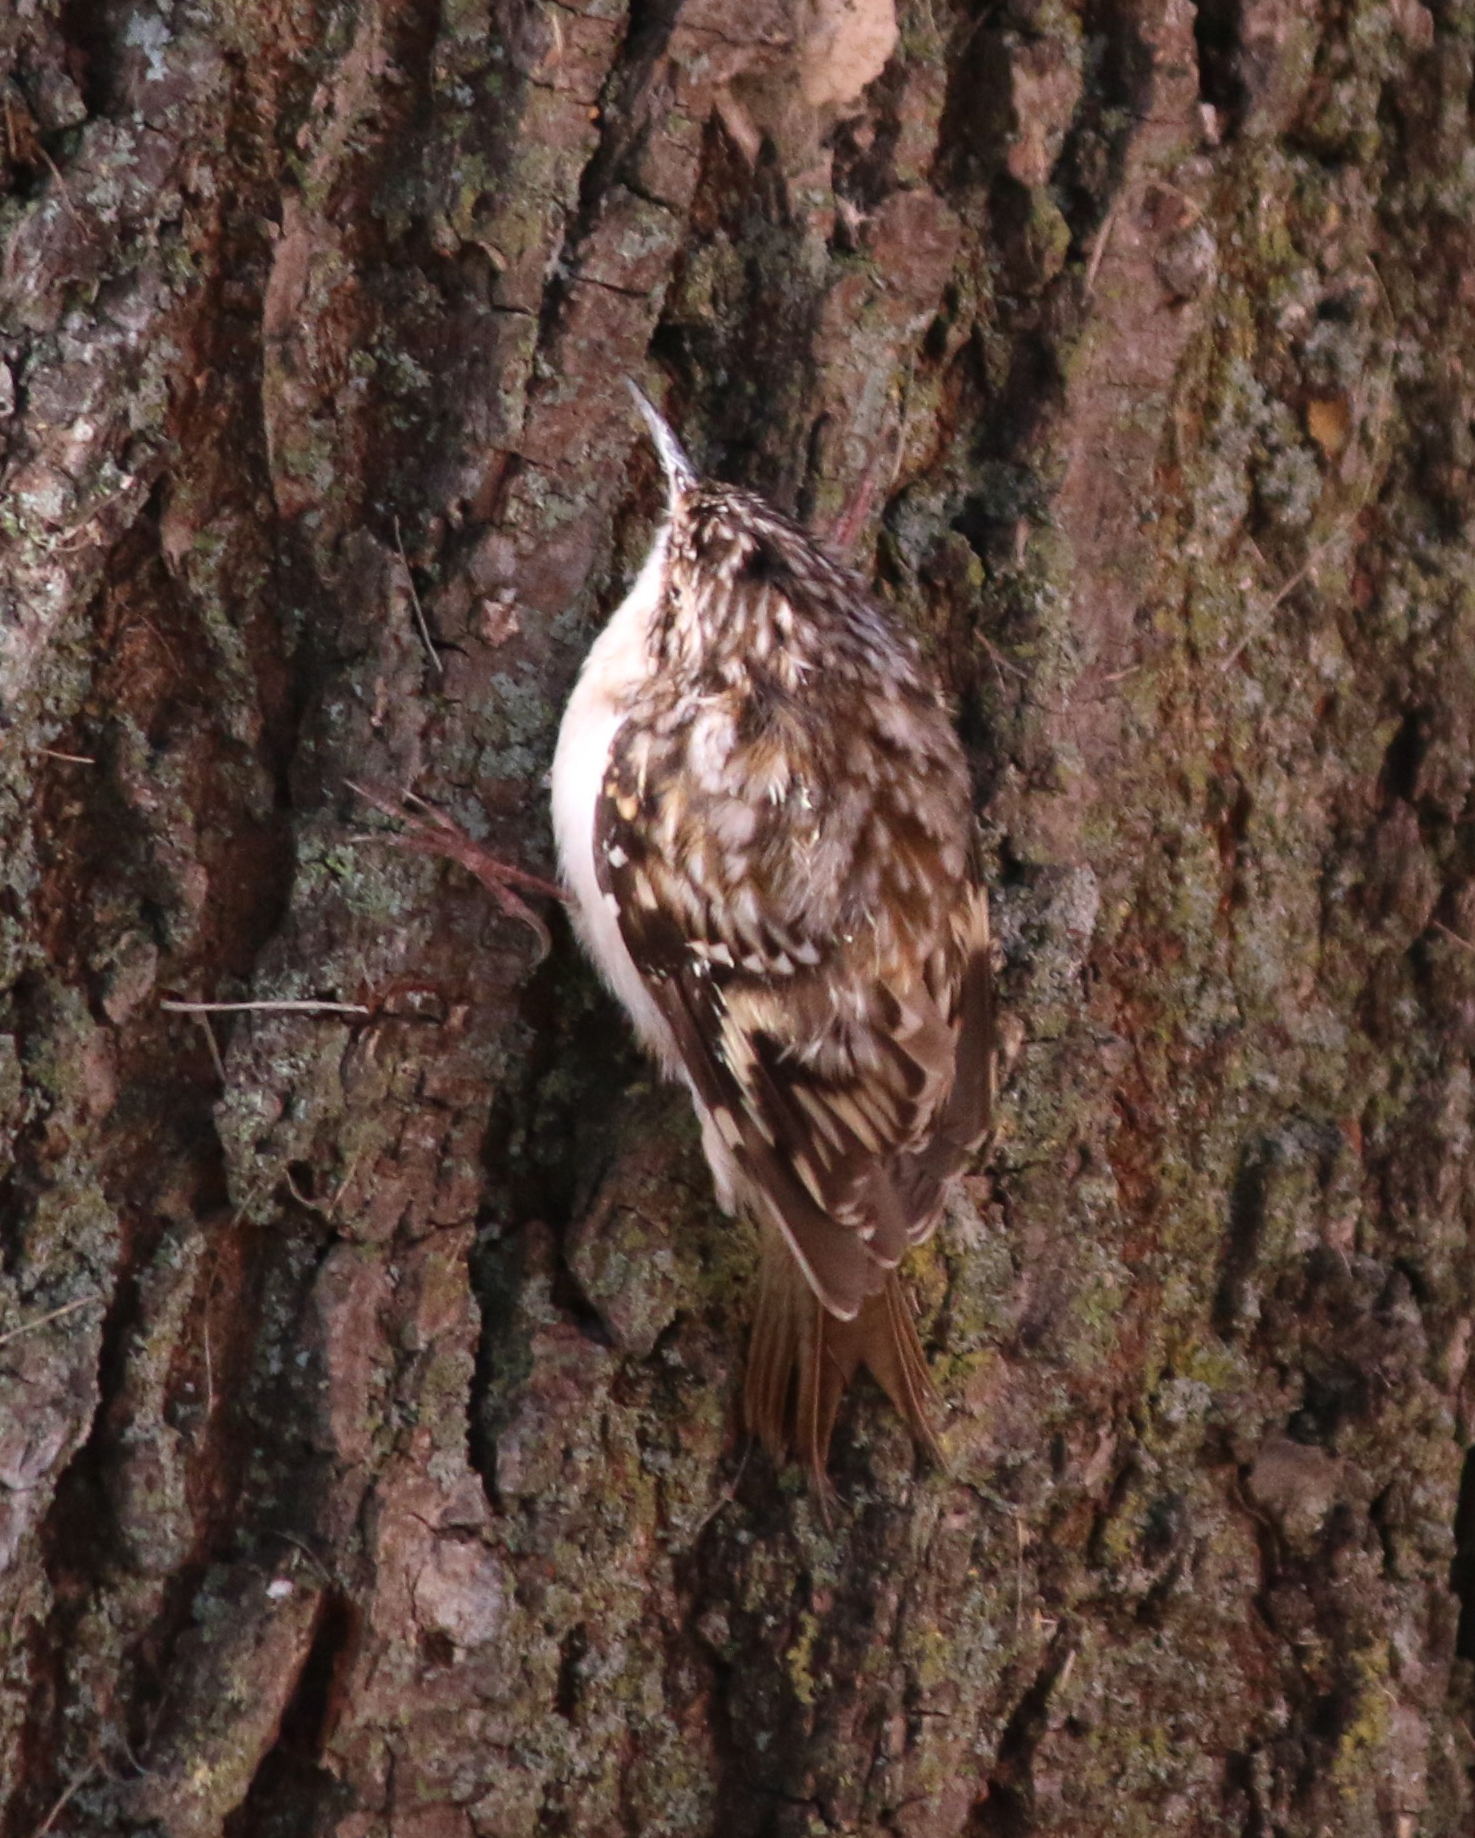 Brown Creeper - photo by Andrew Aldrich